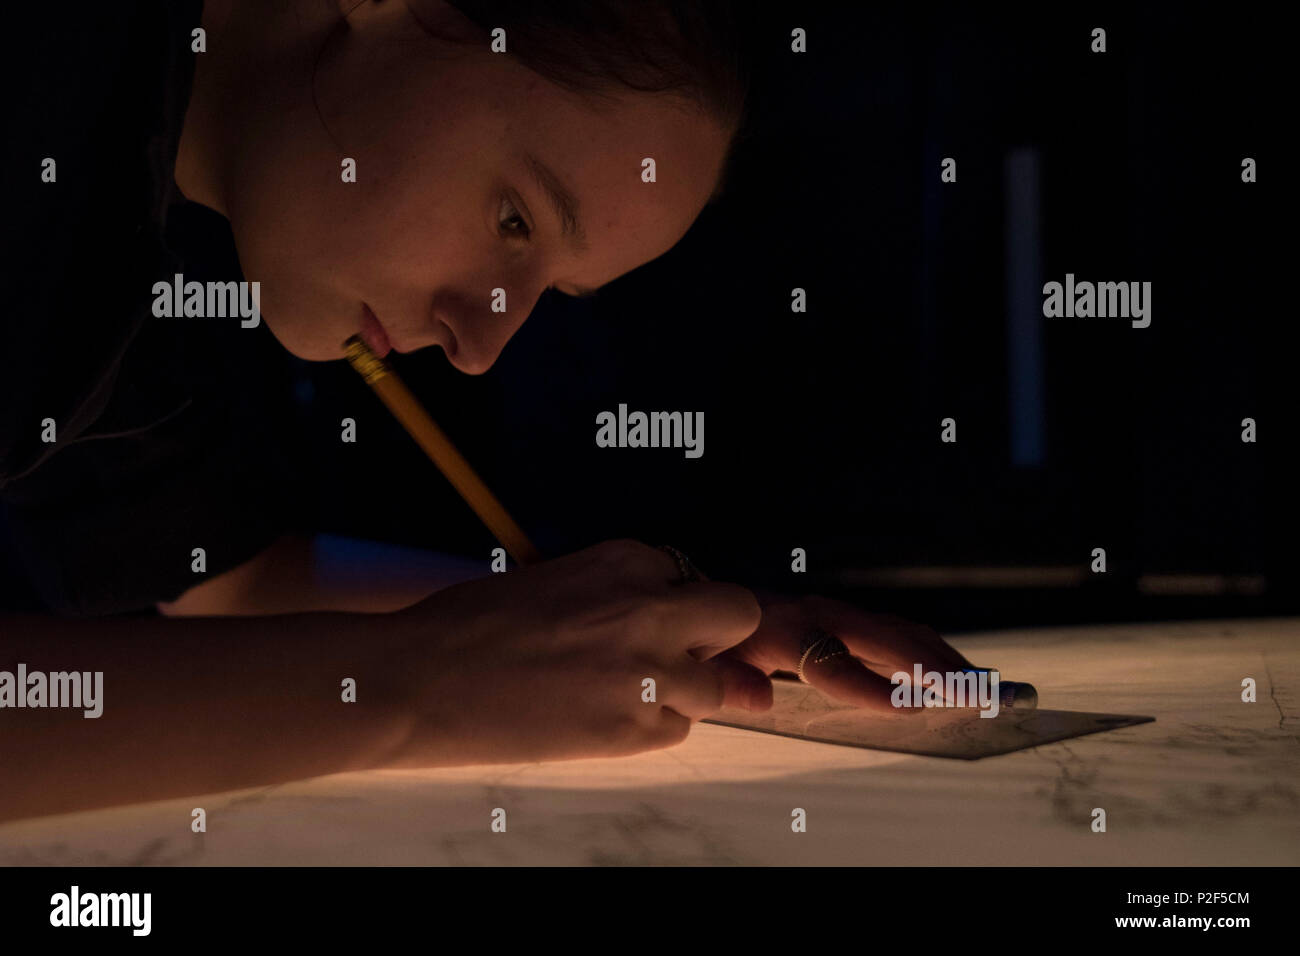 69 position stock photos & 69 position stock images - alamy